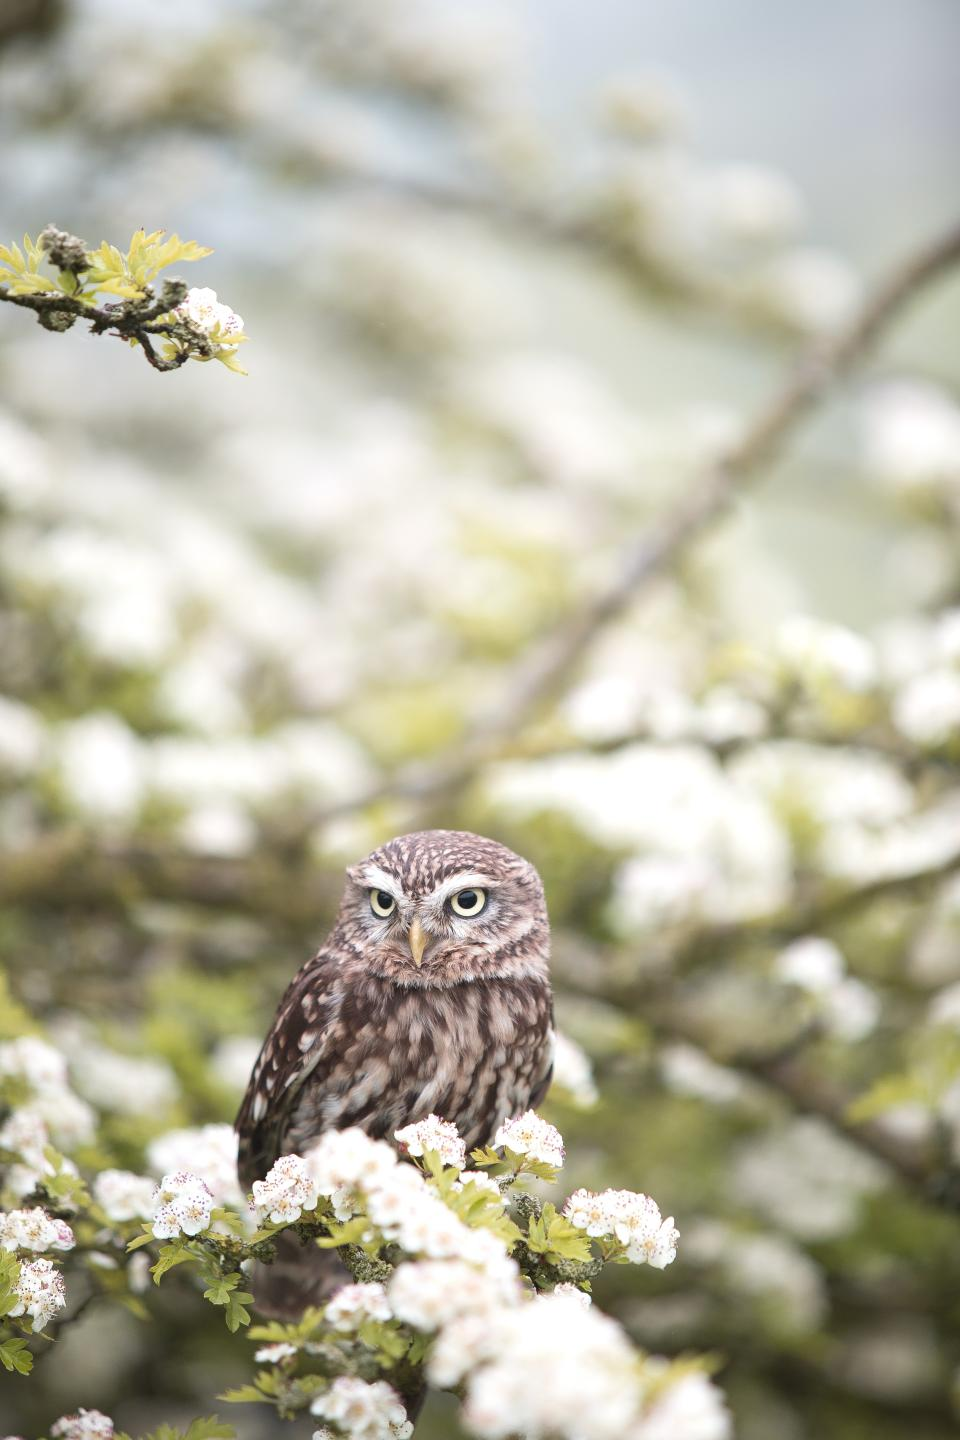 animals birds owl perched flowers nature blossoms branches trees white petals still bokeh beautiful white brown green pastels